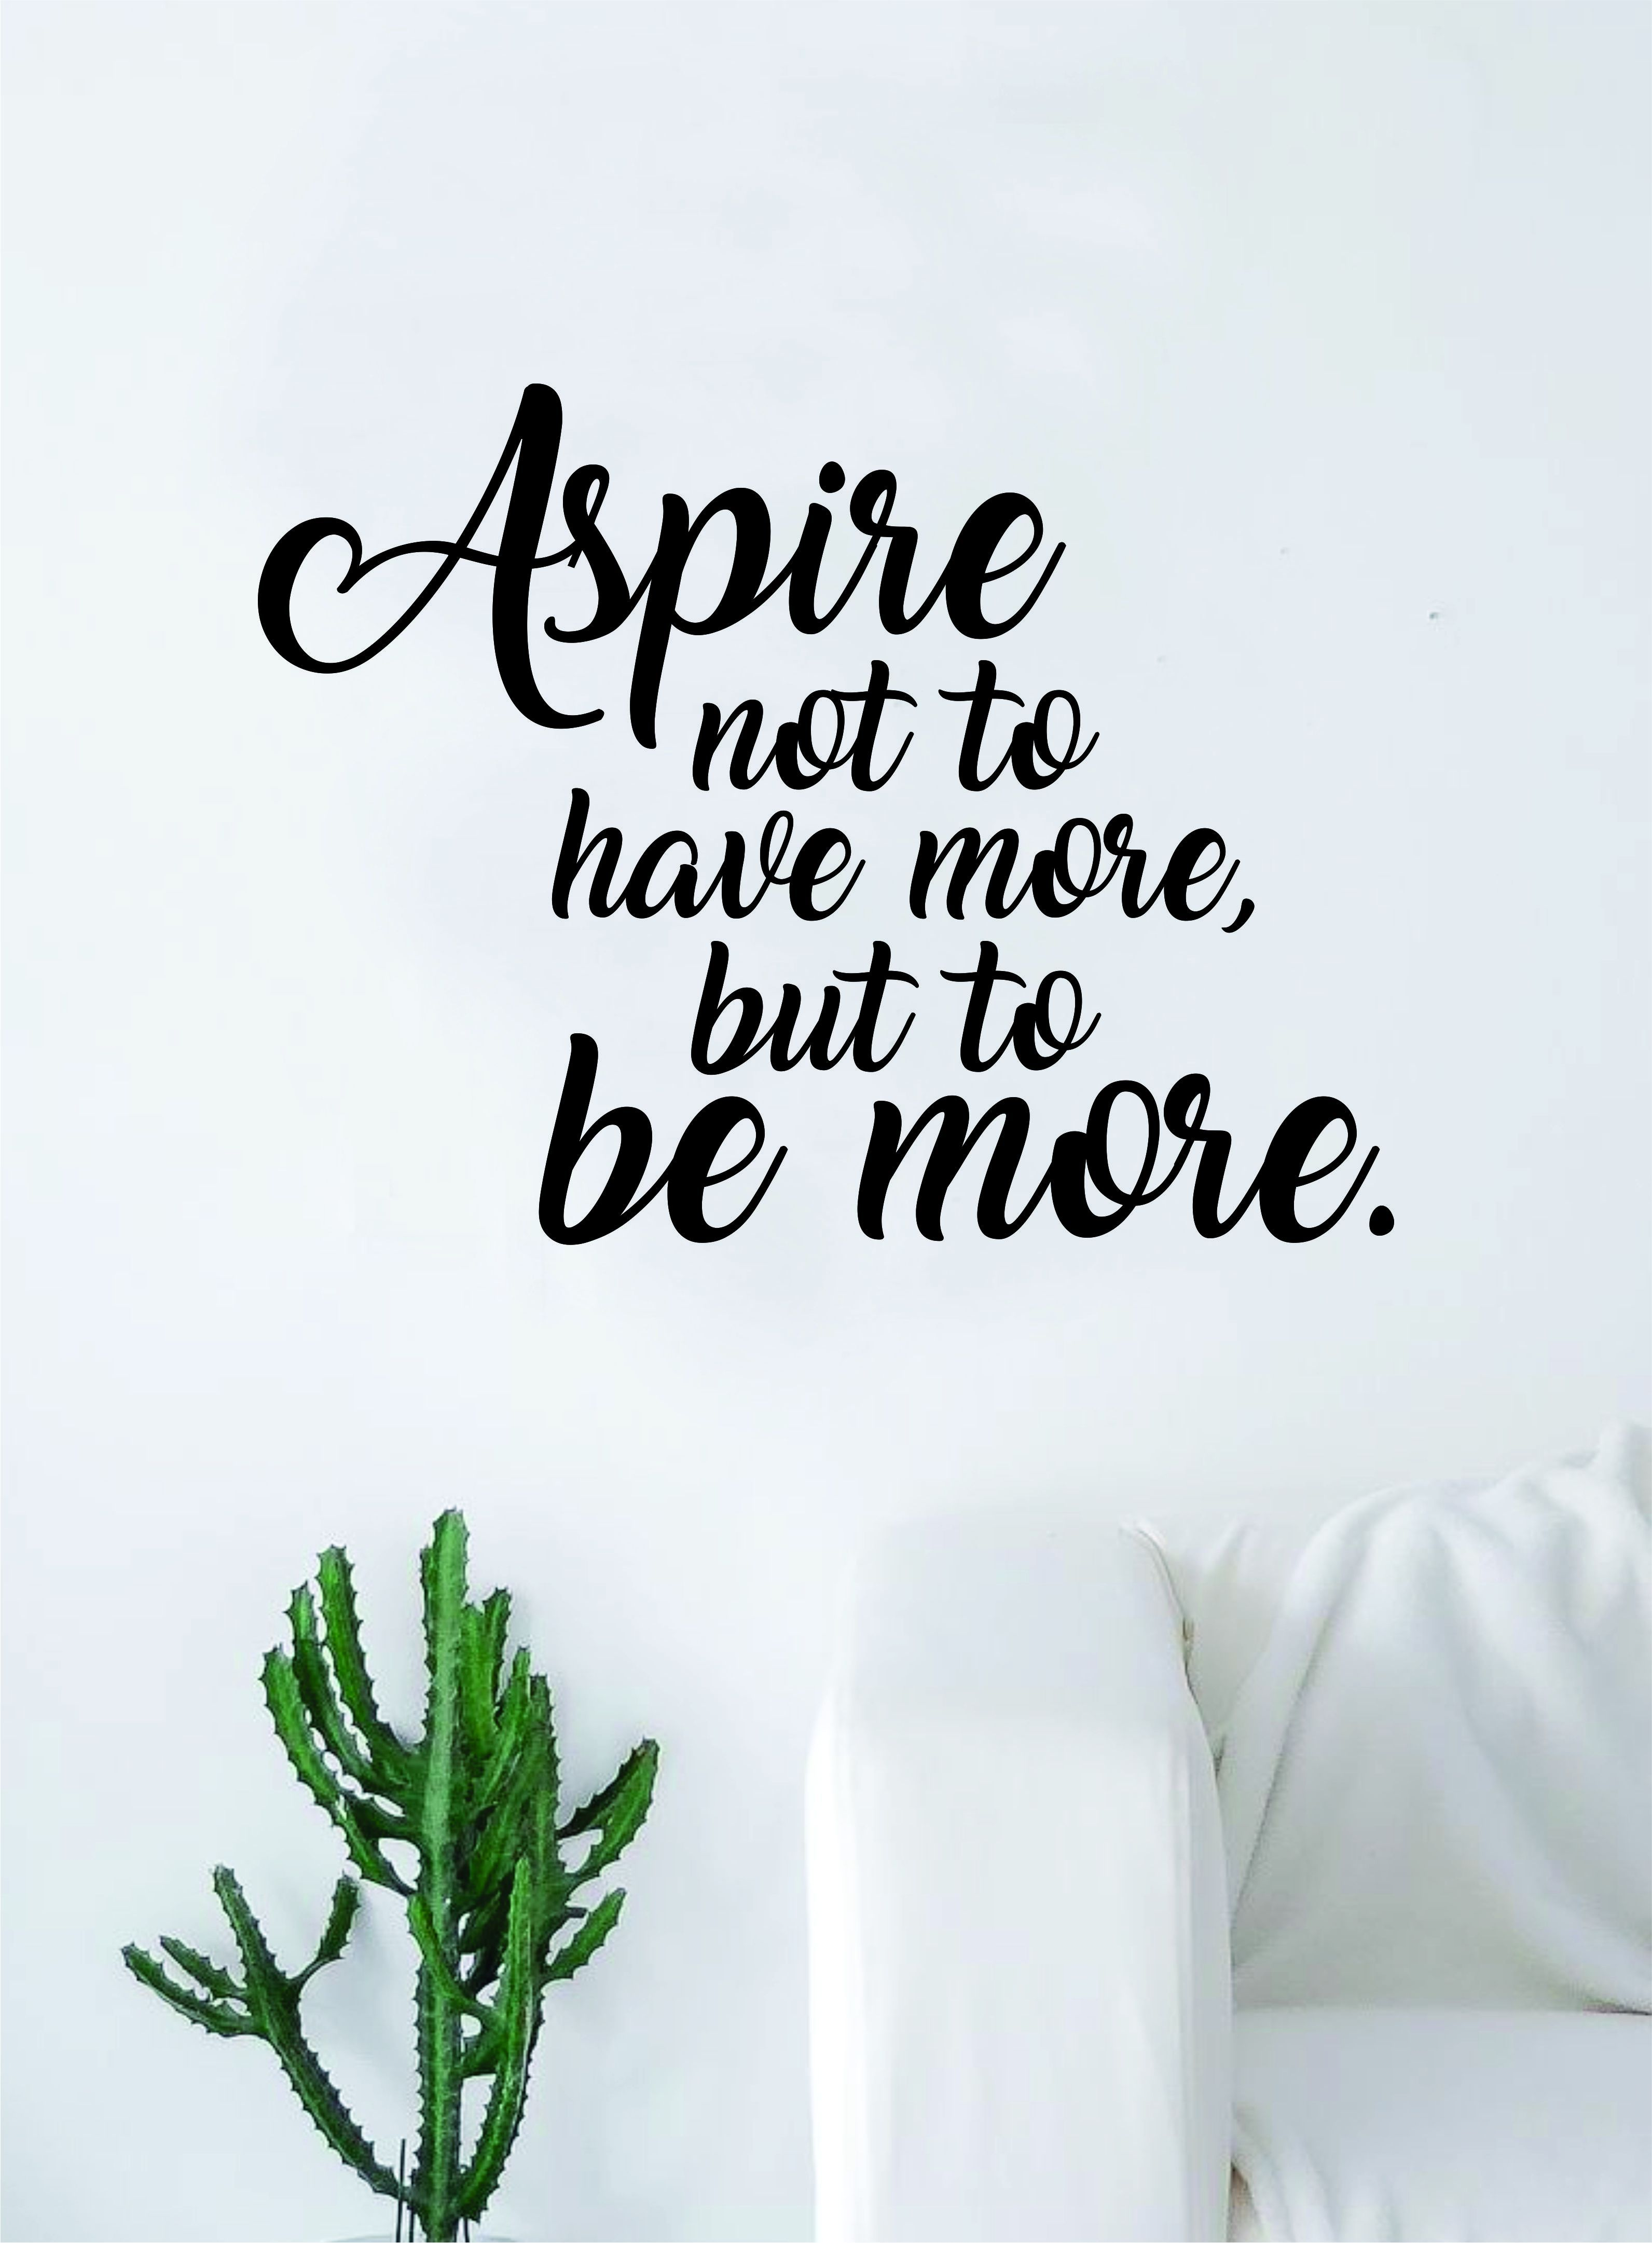 Aspire To Be More Quote Wall Decal Sticker Bedroom Room Art Vinyl Inspirational Motivational Kids Teen School Sports Gym Office Baby Nursery - brown